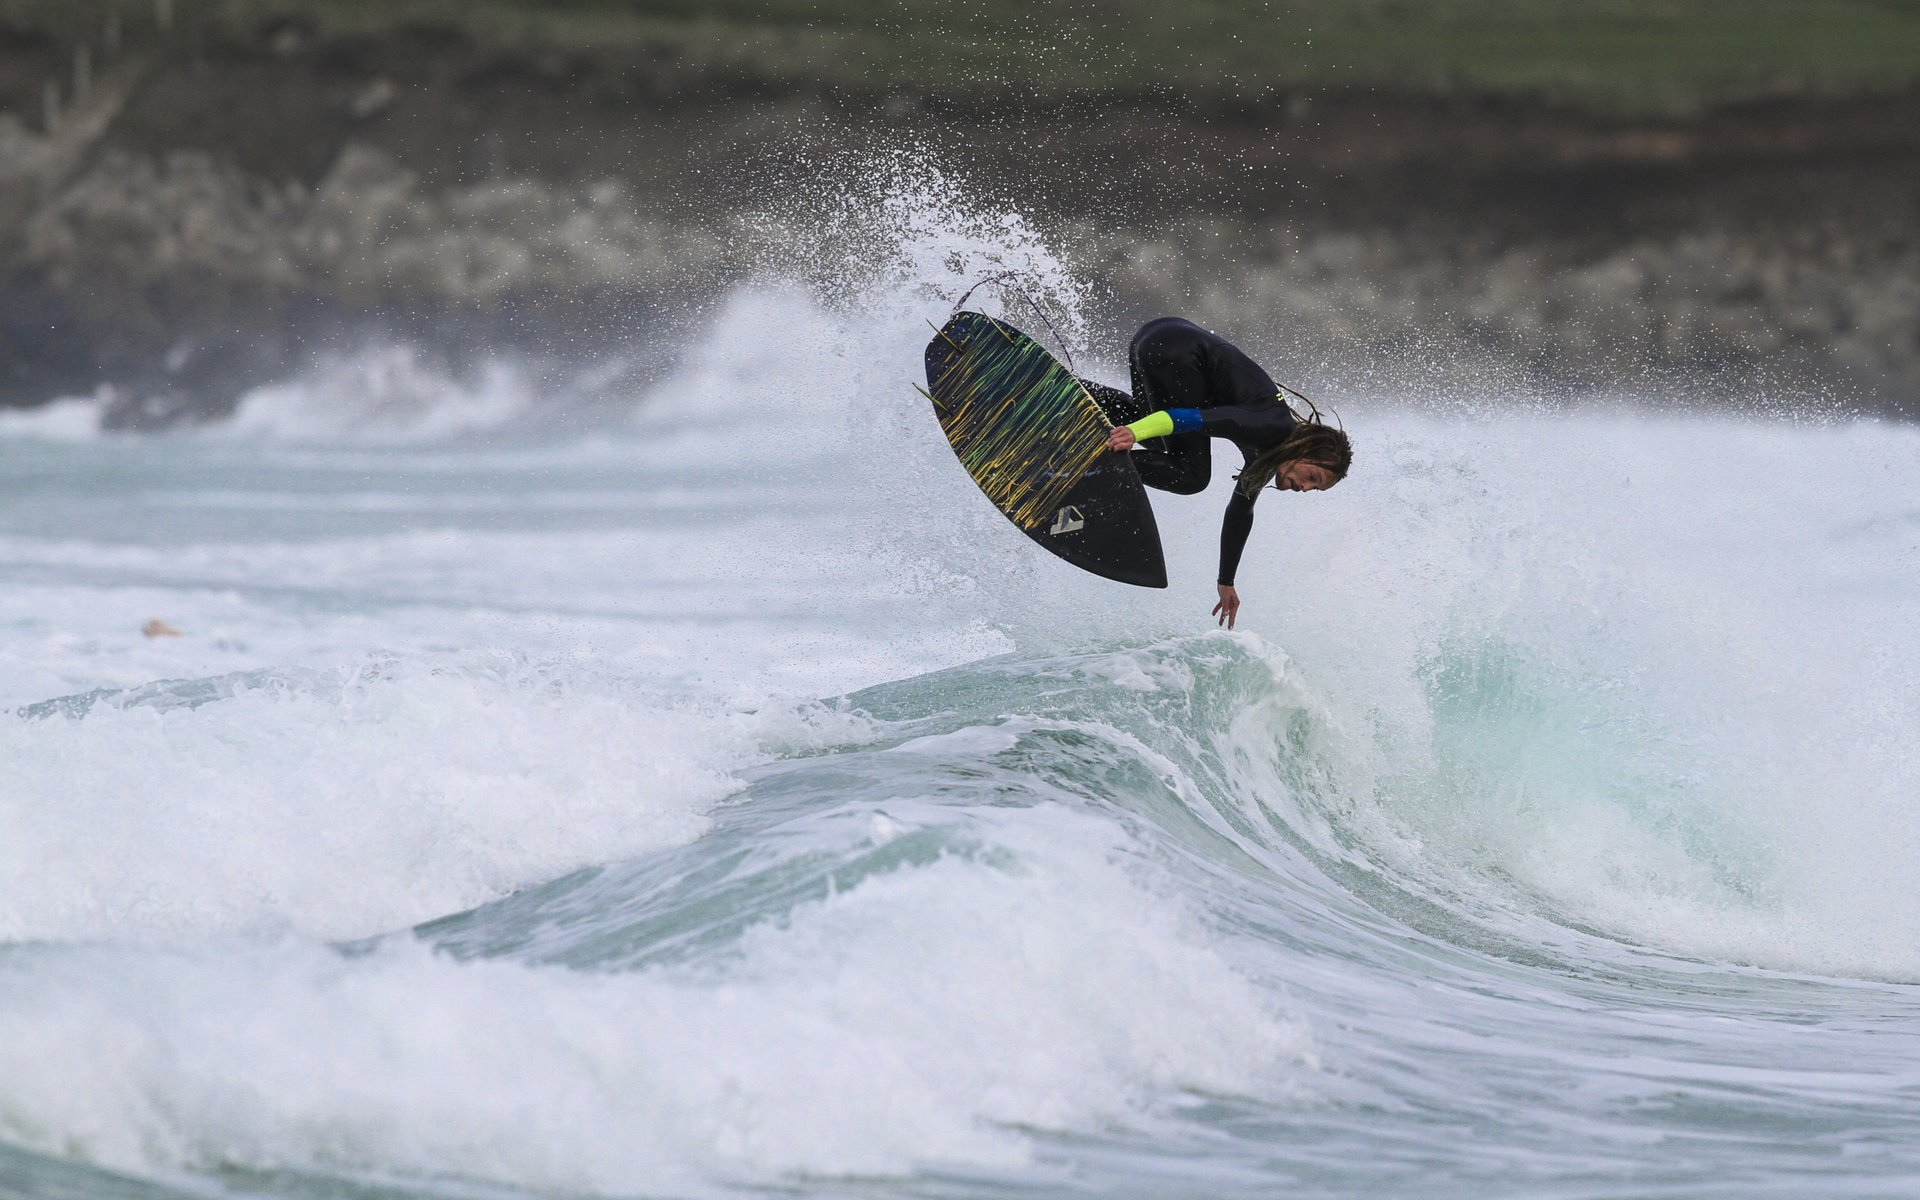 Xander Ettling Media's photo of Porthmeor